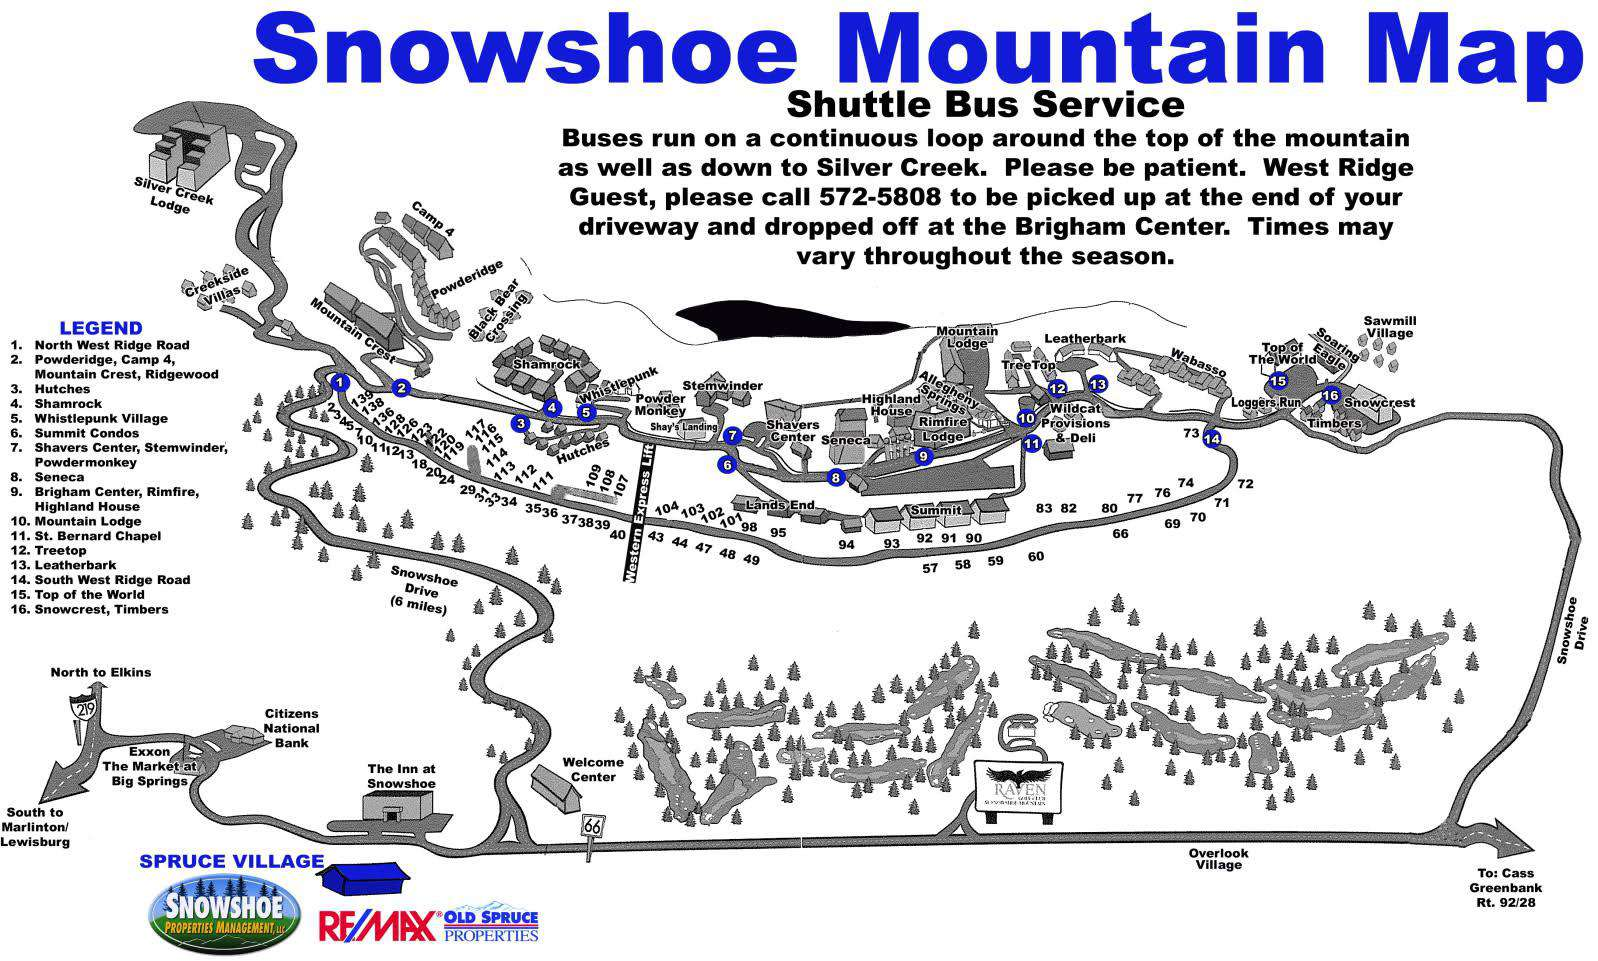 Snowshoe Mountain Map